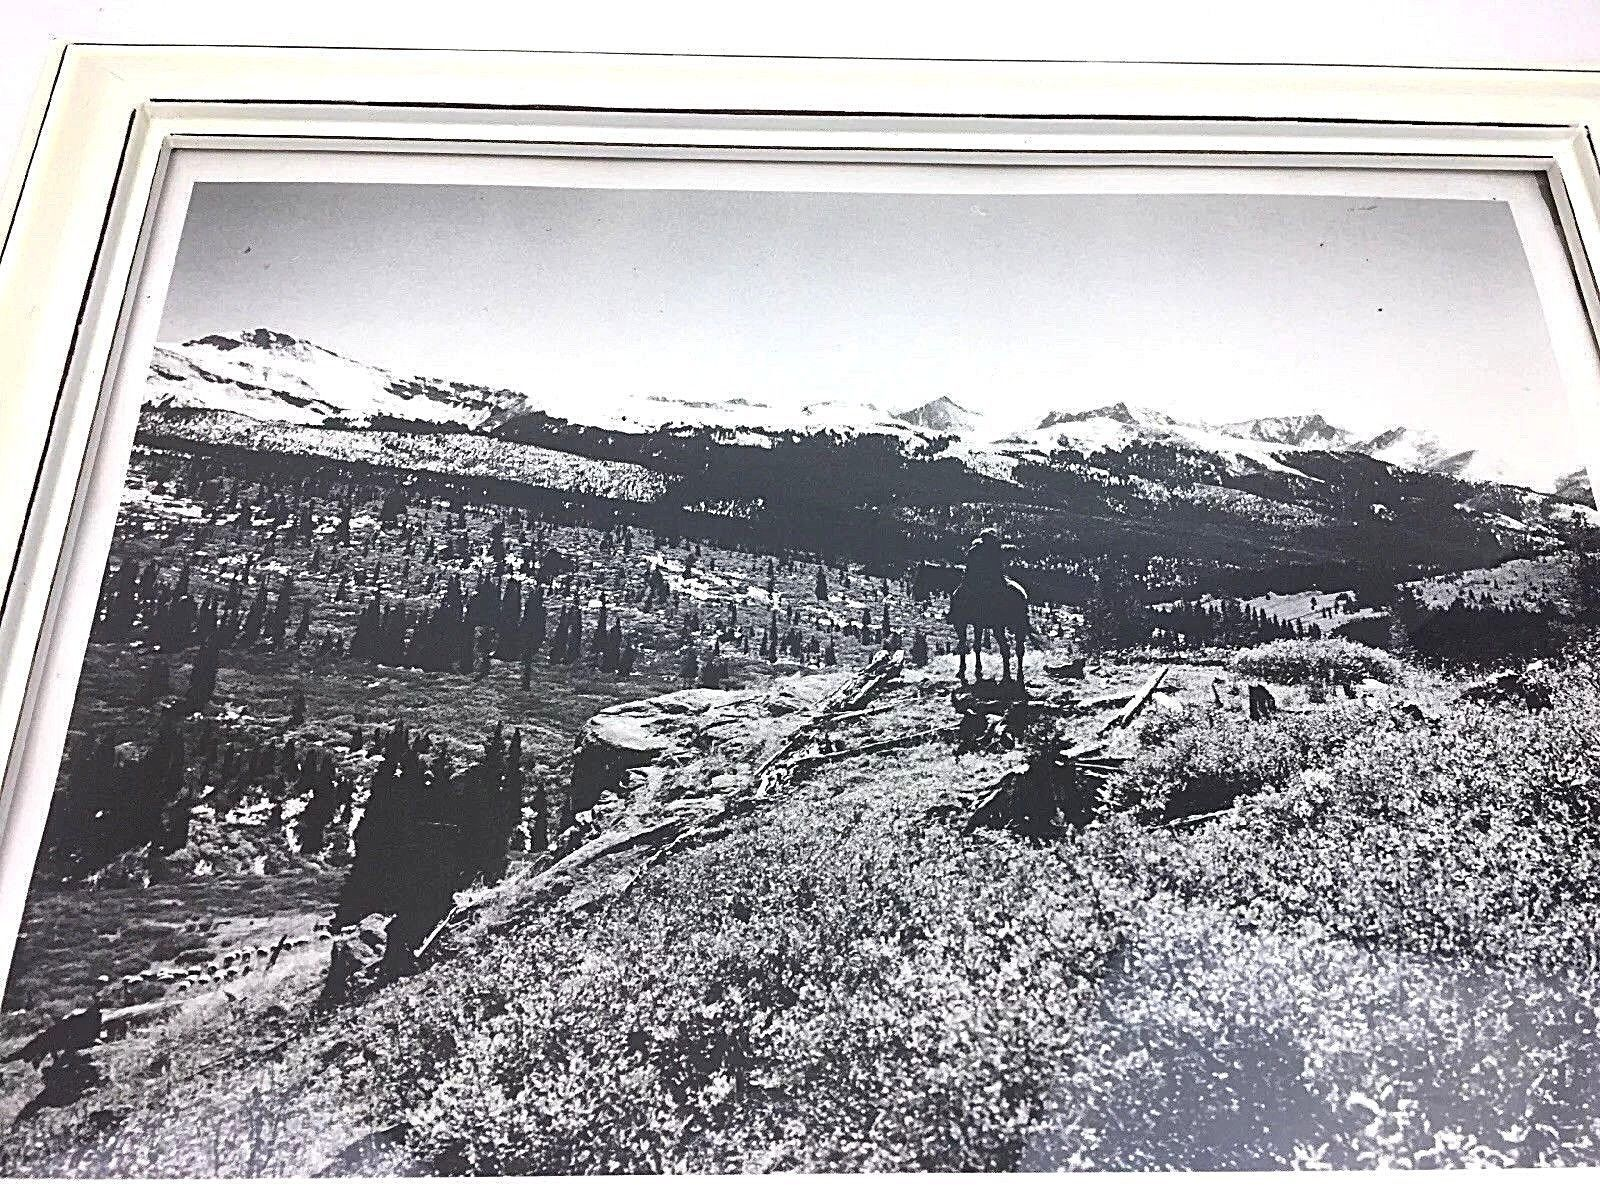 Rocky Mountain Cowboy Photographic Print by Richard Dick Purdie of Denver, CO